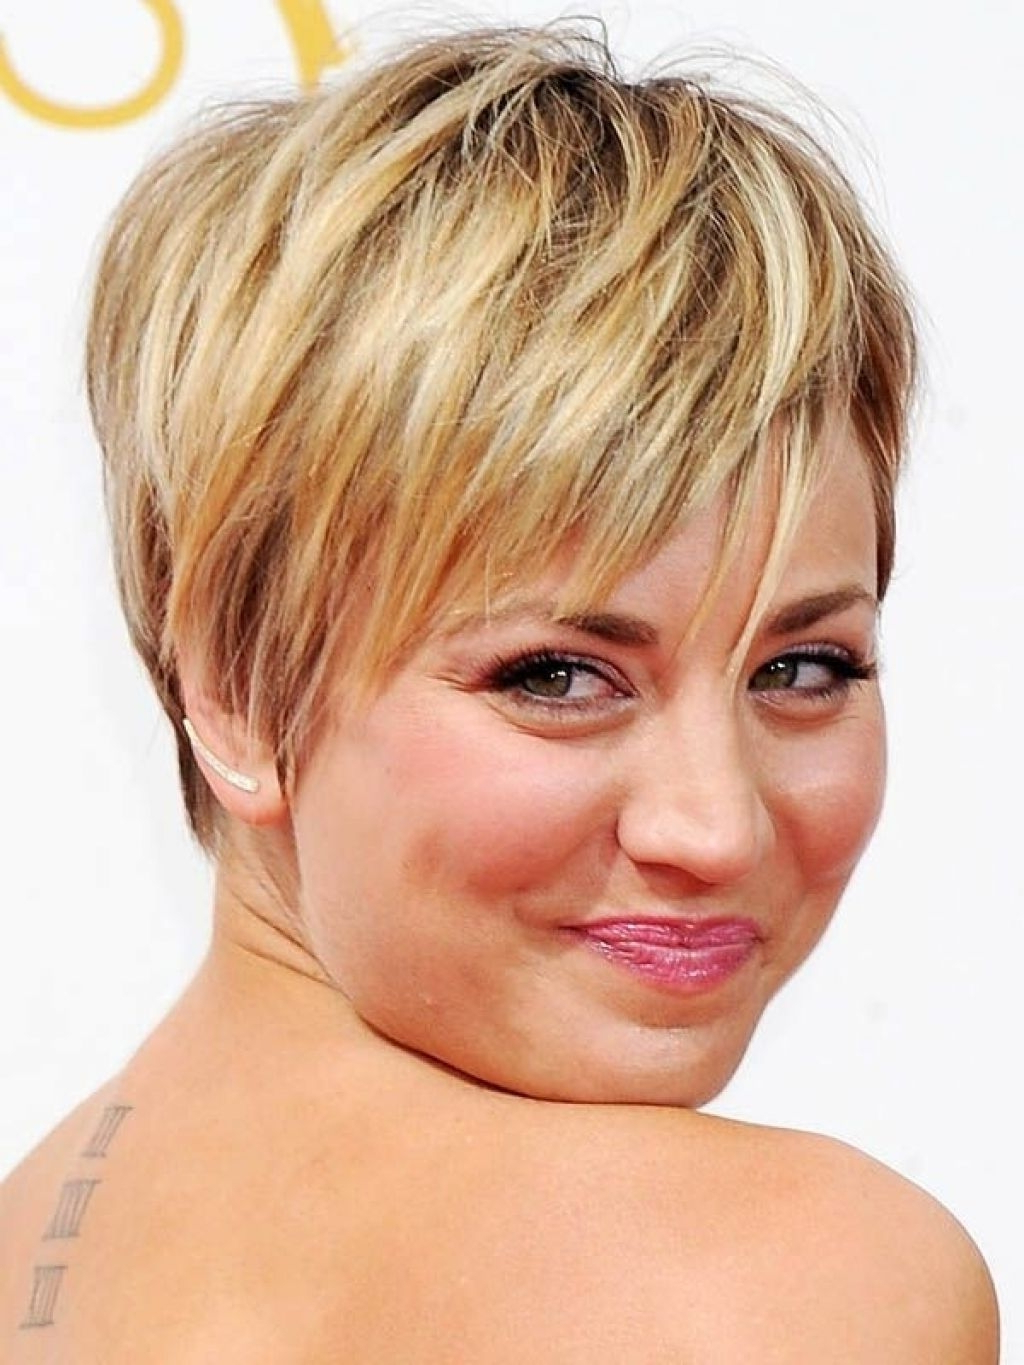 Hairstyles For Round Chubby Face Shapes With Regard To Short Haircuts For Round Chubby Faces (View 16 of 25)